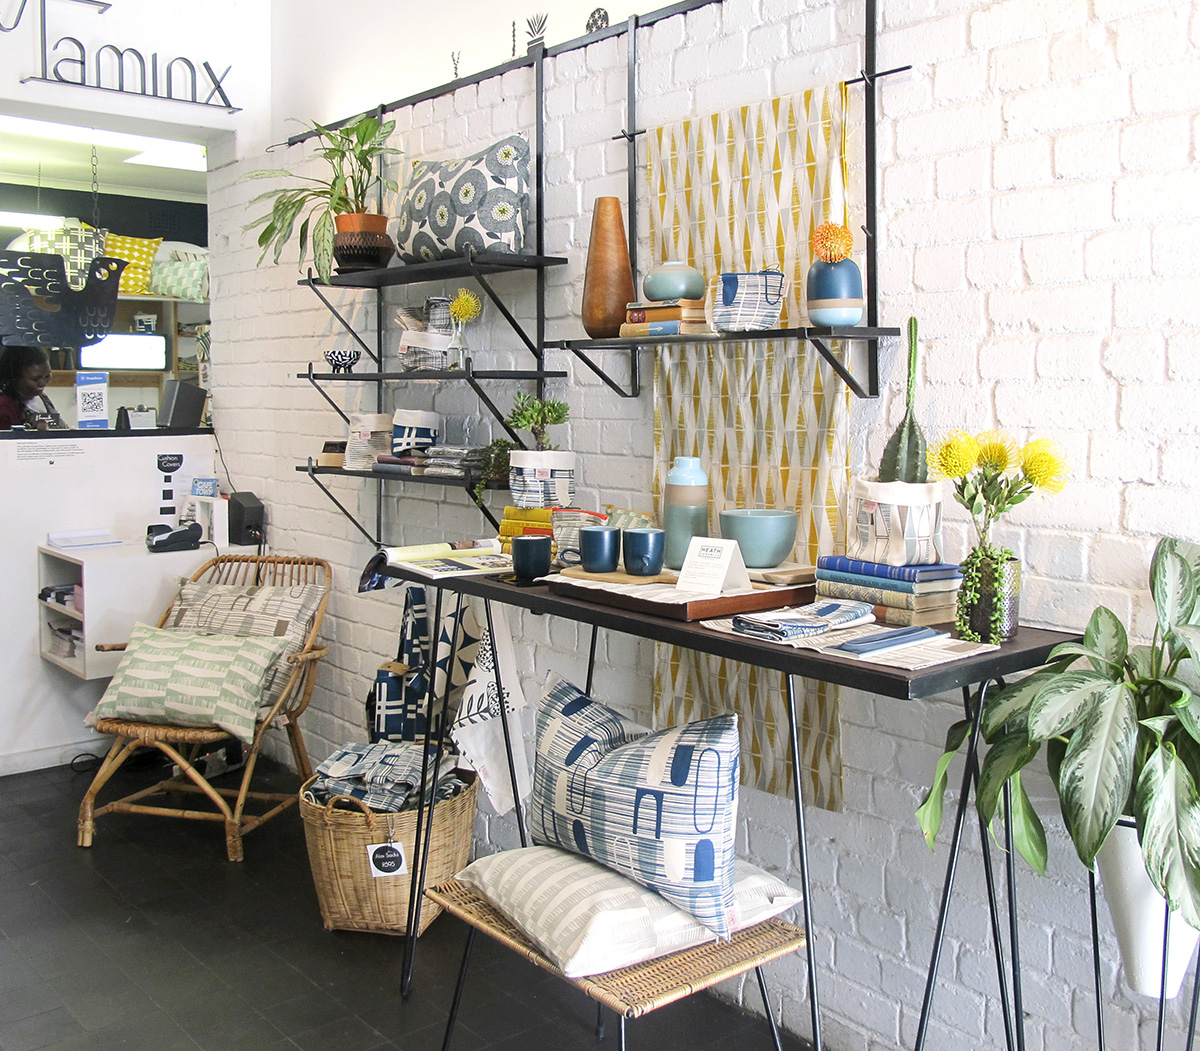 The Skinny laMinx shop in Cape Town